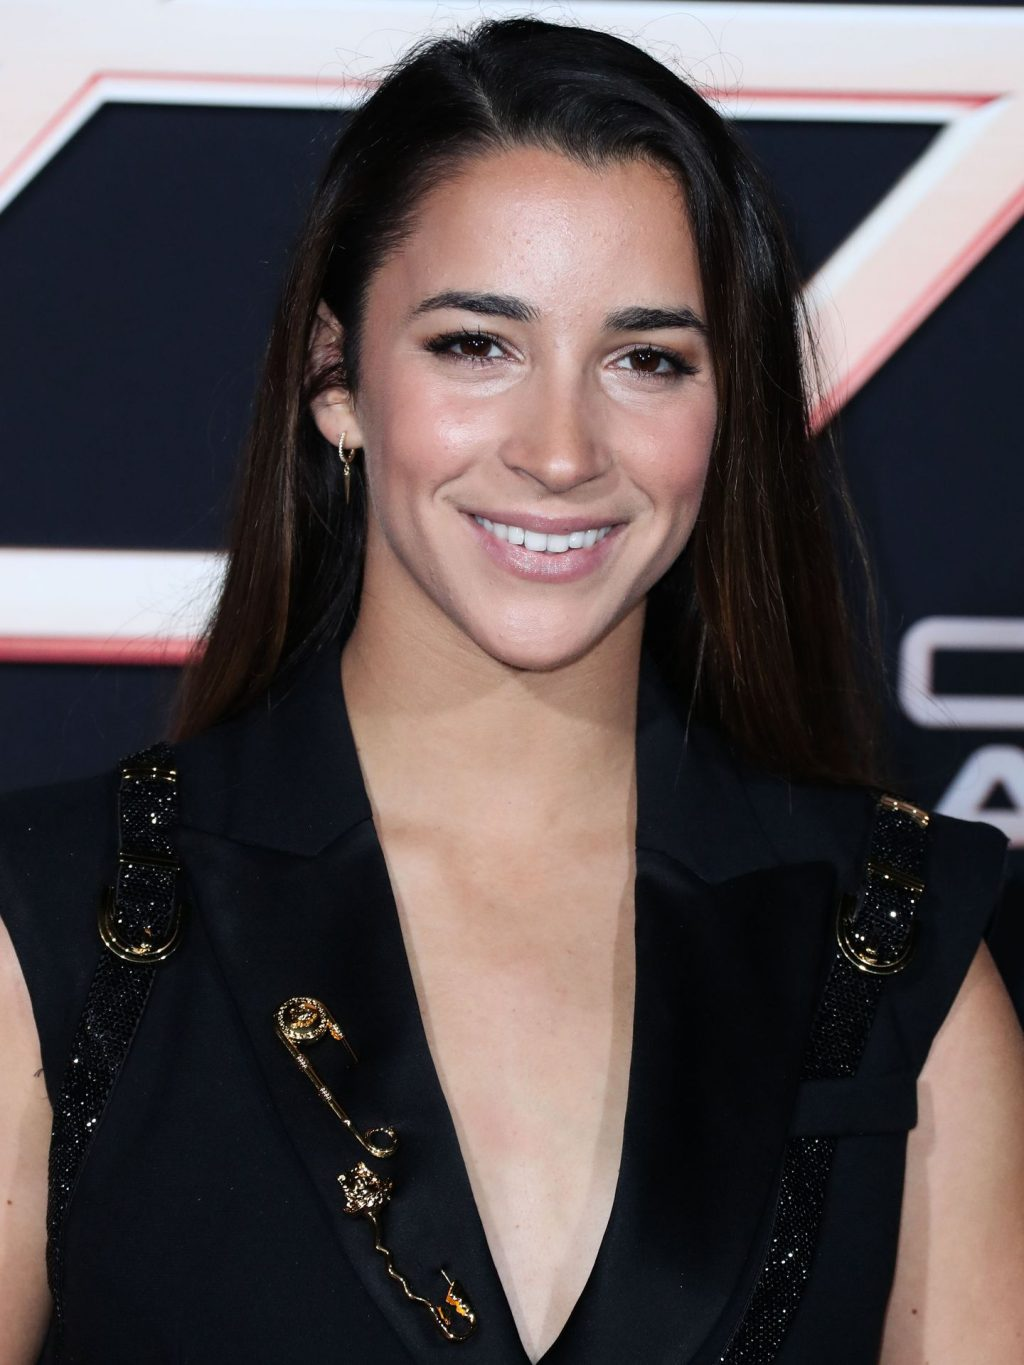 Aly Raisman Sexy (37 Photos)